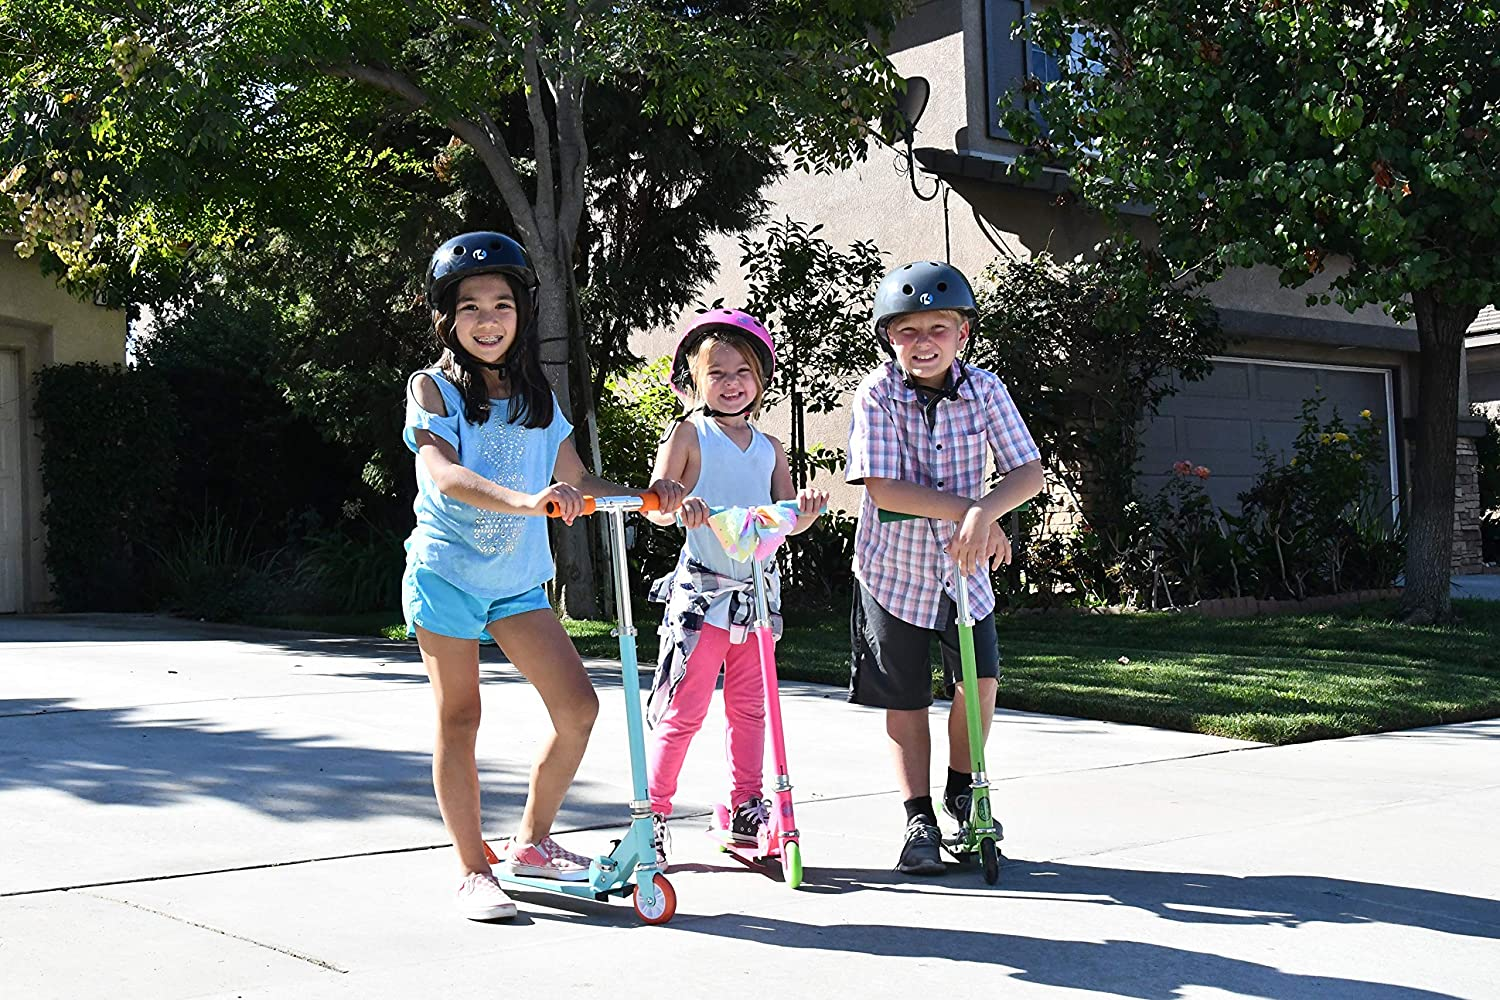 Amazon.com: PlayWheels JoJo - Patinete de 2 ruedas de ...